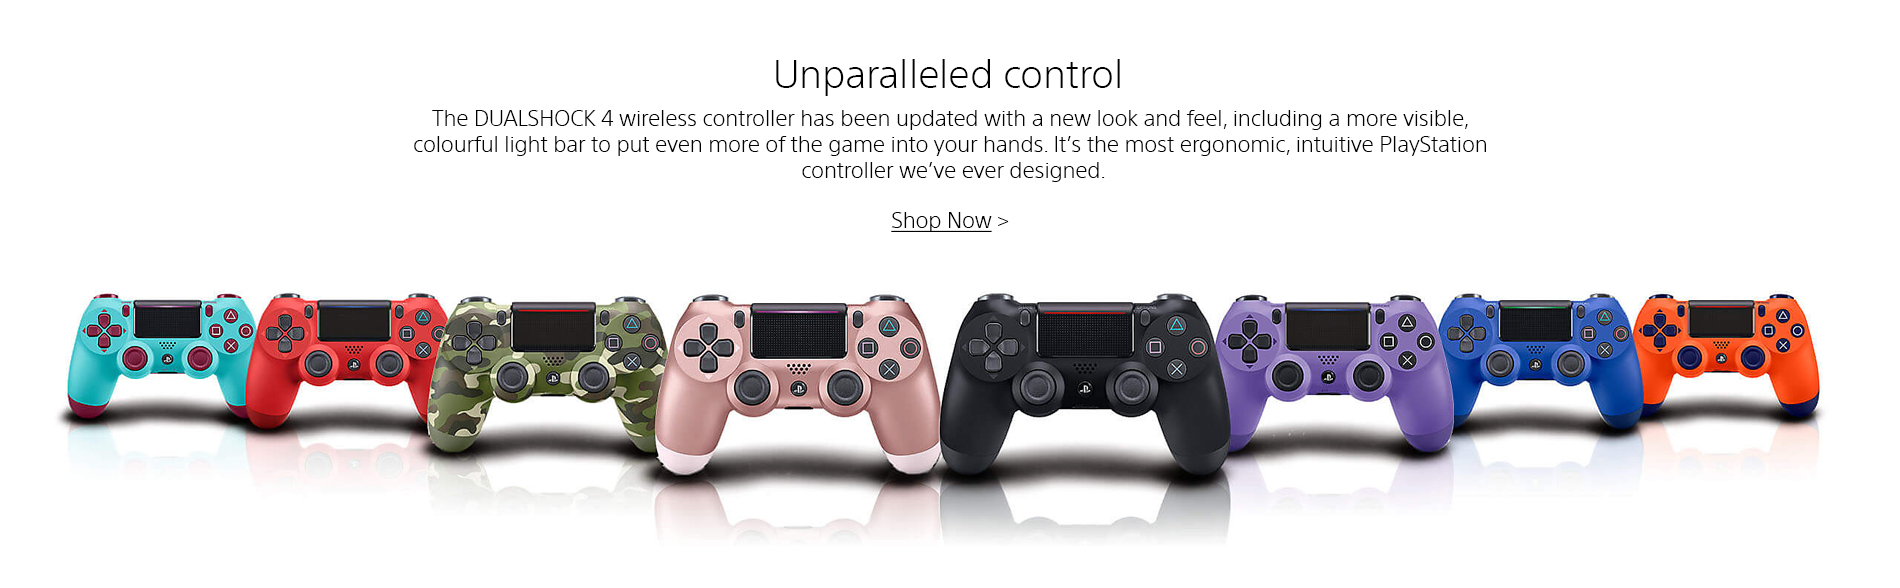 Sony Playstation 4 Landing Page 02  Tile 05